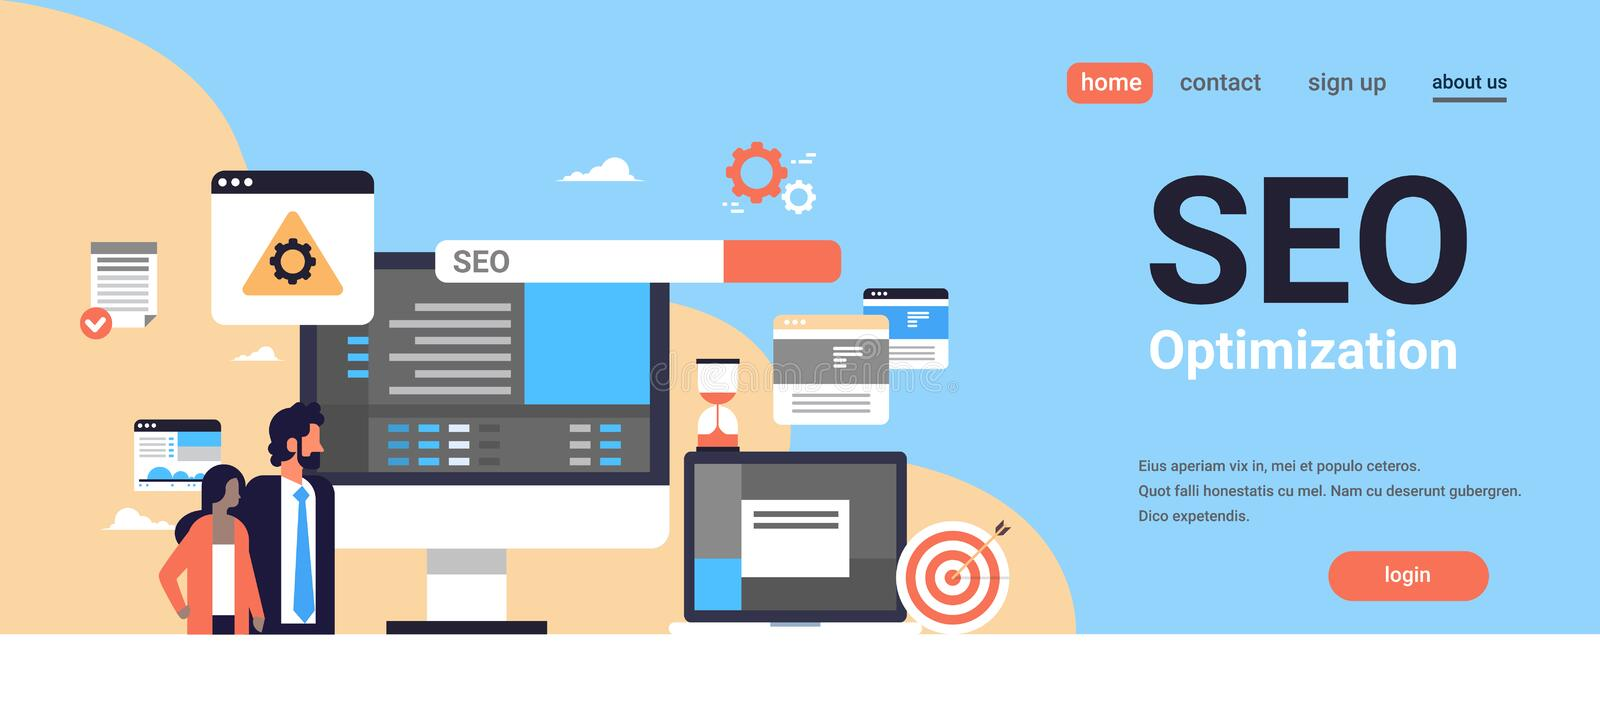 Seo search engine optimization couple man woman monitoring internet searching concept process flat horizontal banner. Copy space vector illustration vector illustration